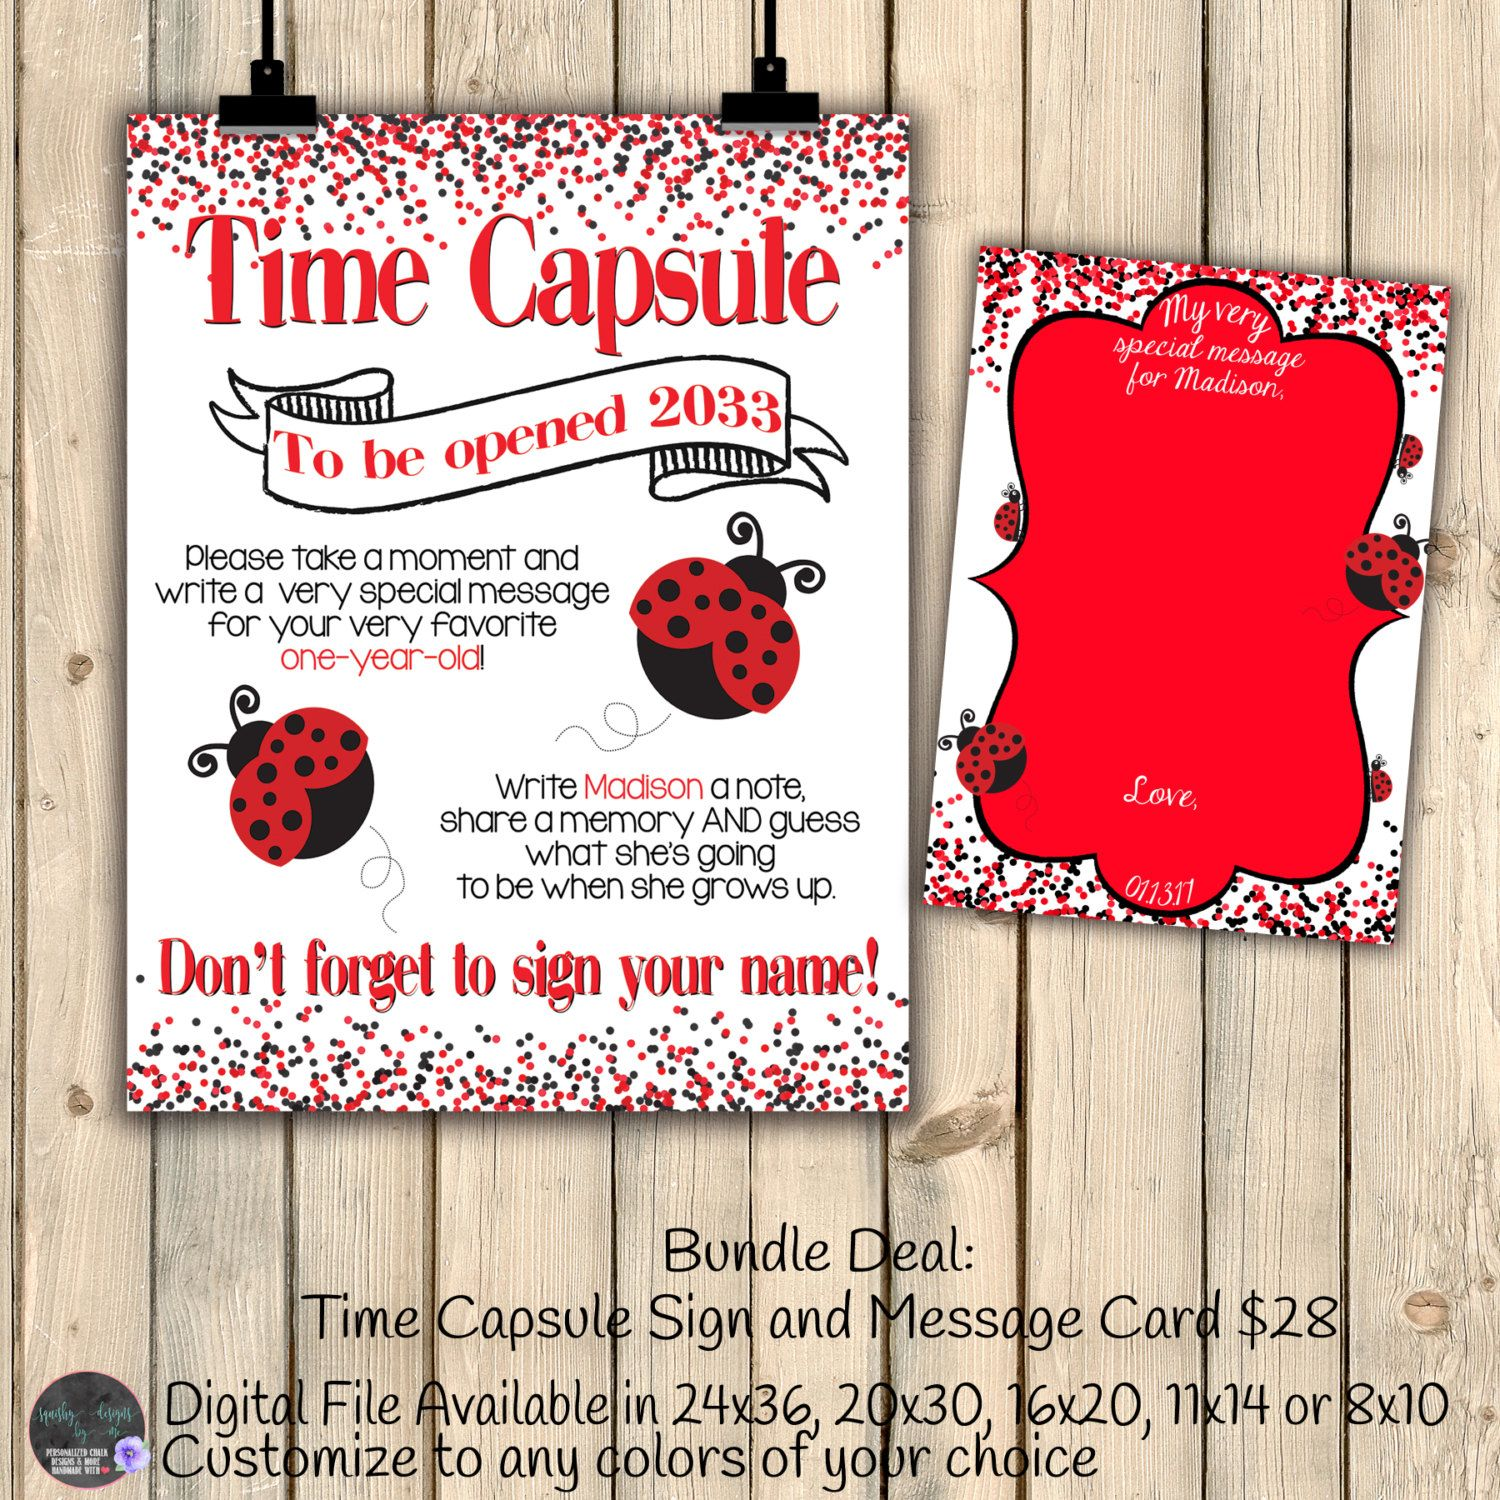 Red 1 Next To Time Capsule Ladybug Time Capsule Chalkboard Sign With Message Card